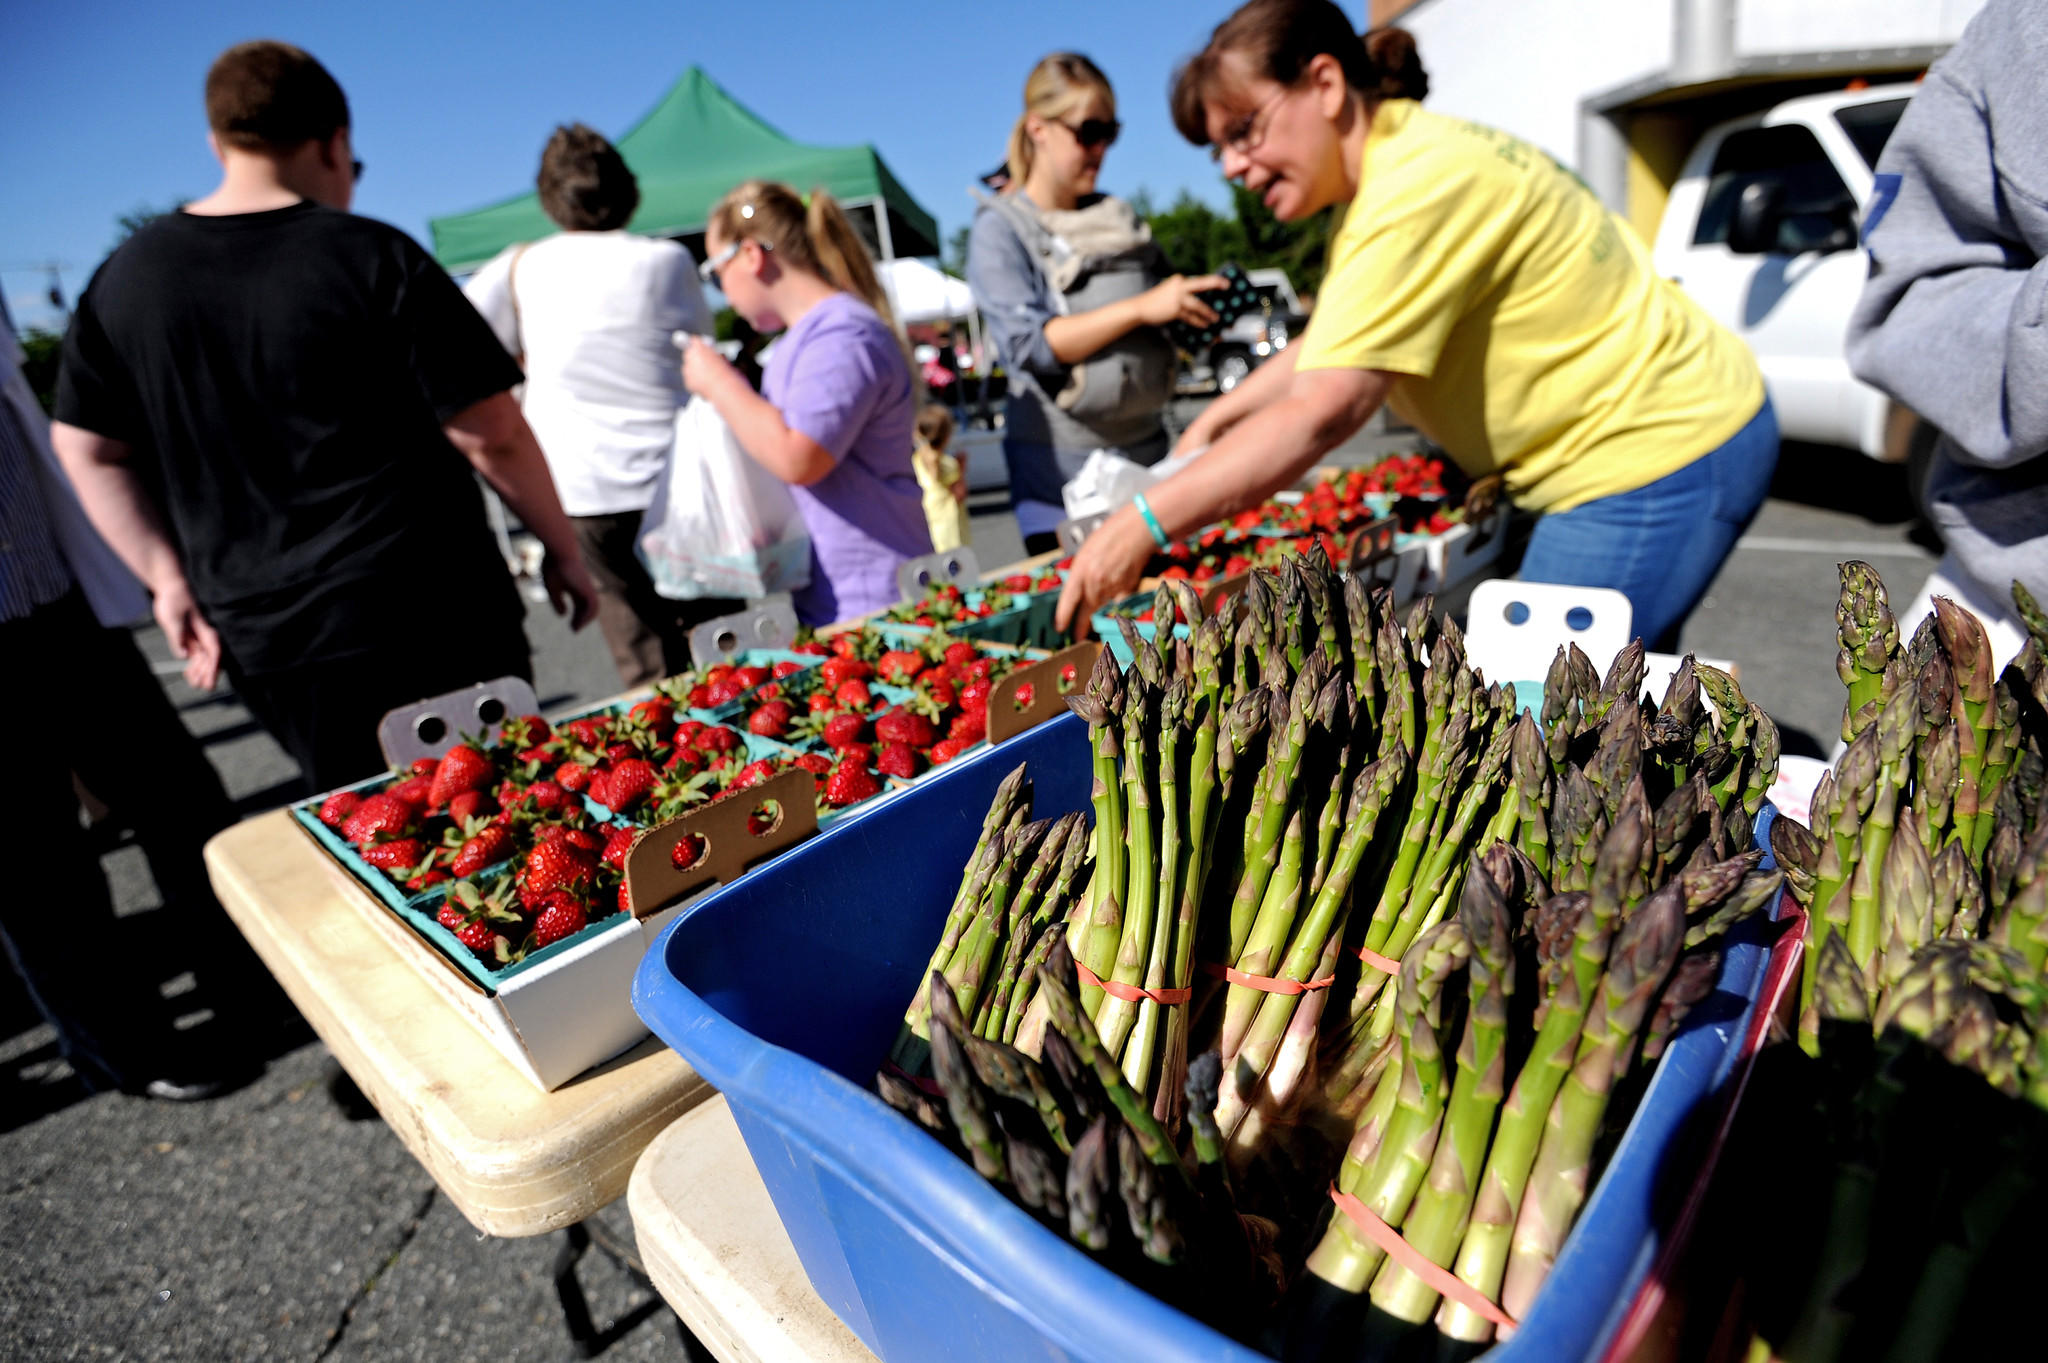 Customers of Brad's Produce of Churchville, Md., purchase asparagus and strawberries during the Bel Air Farmer's Market. Brad's Produce is one of several Harford County farms practicing sustainable agriculture.